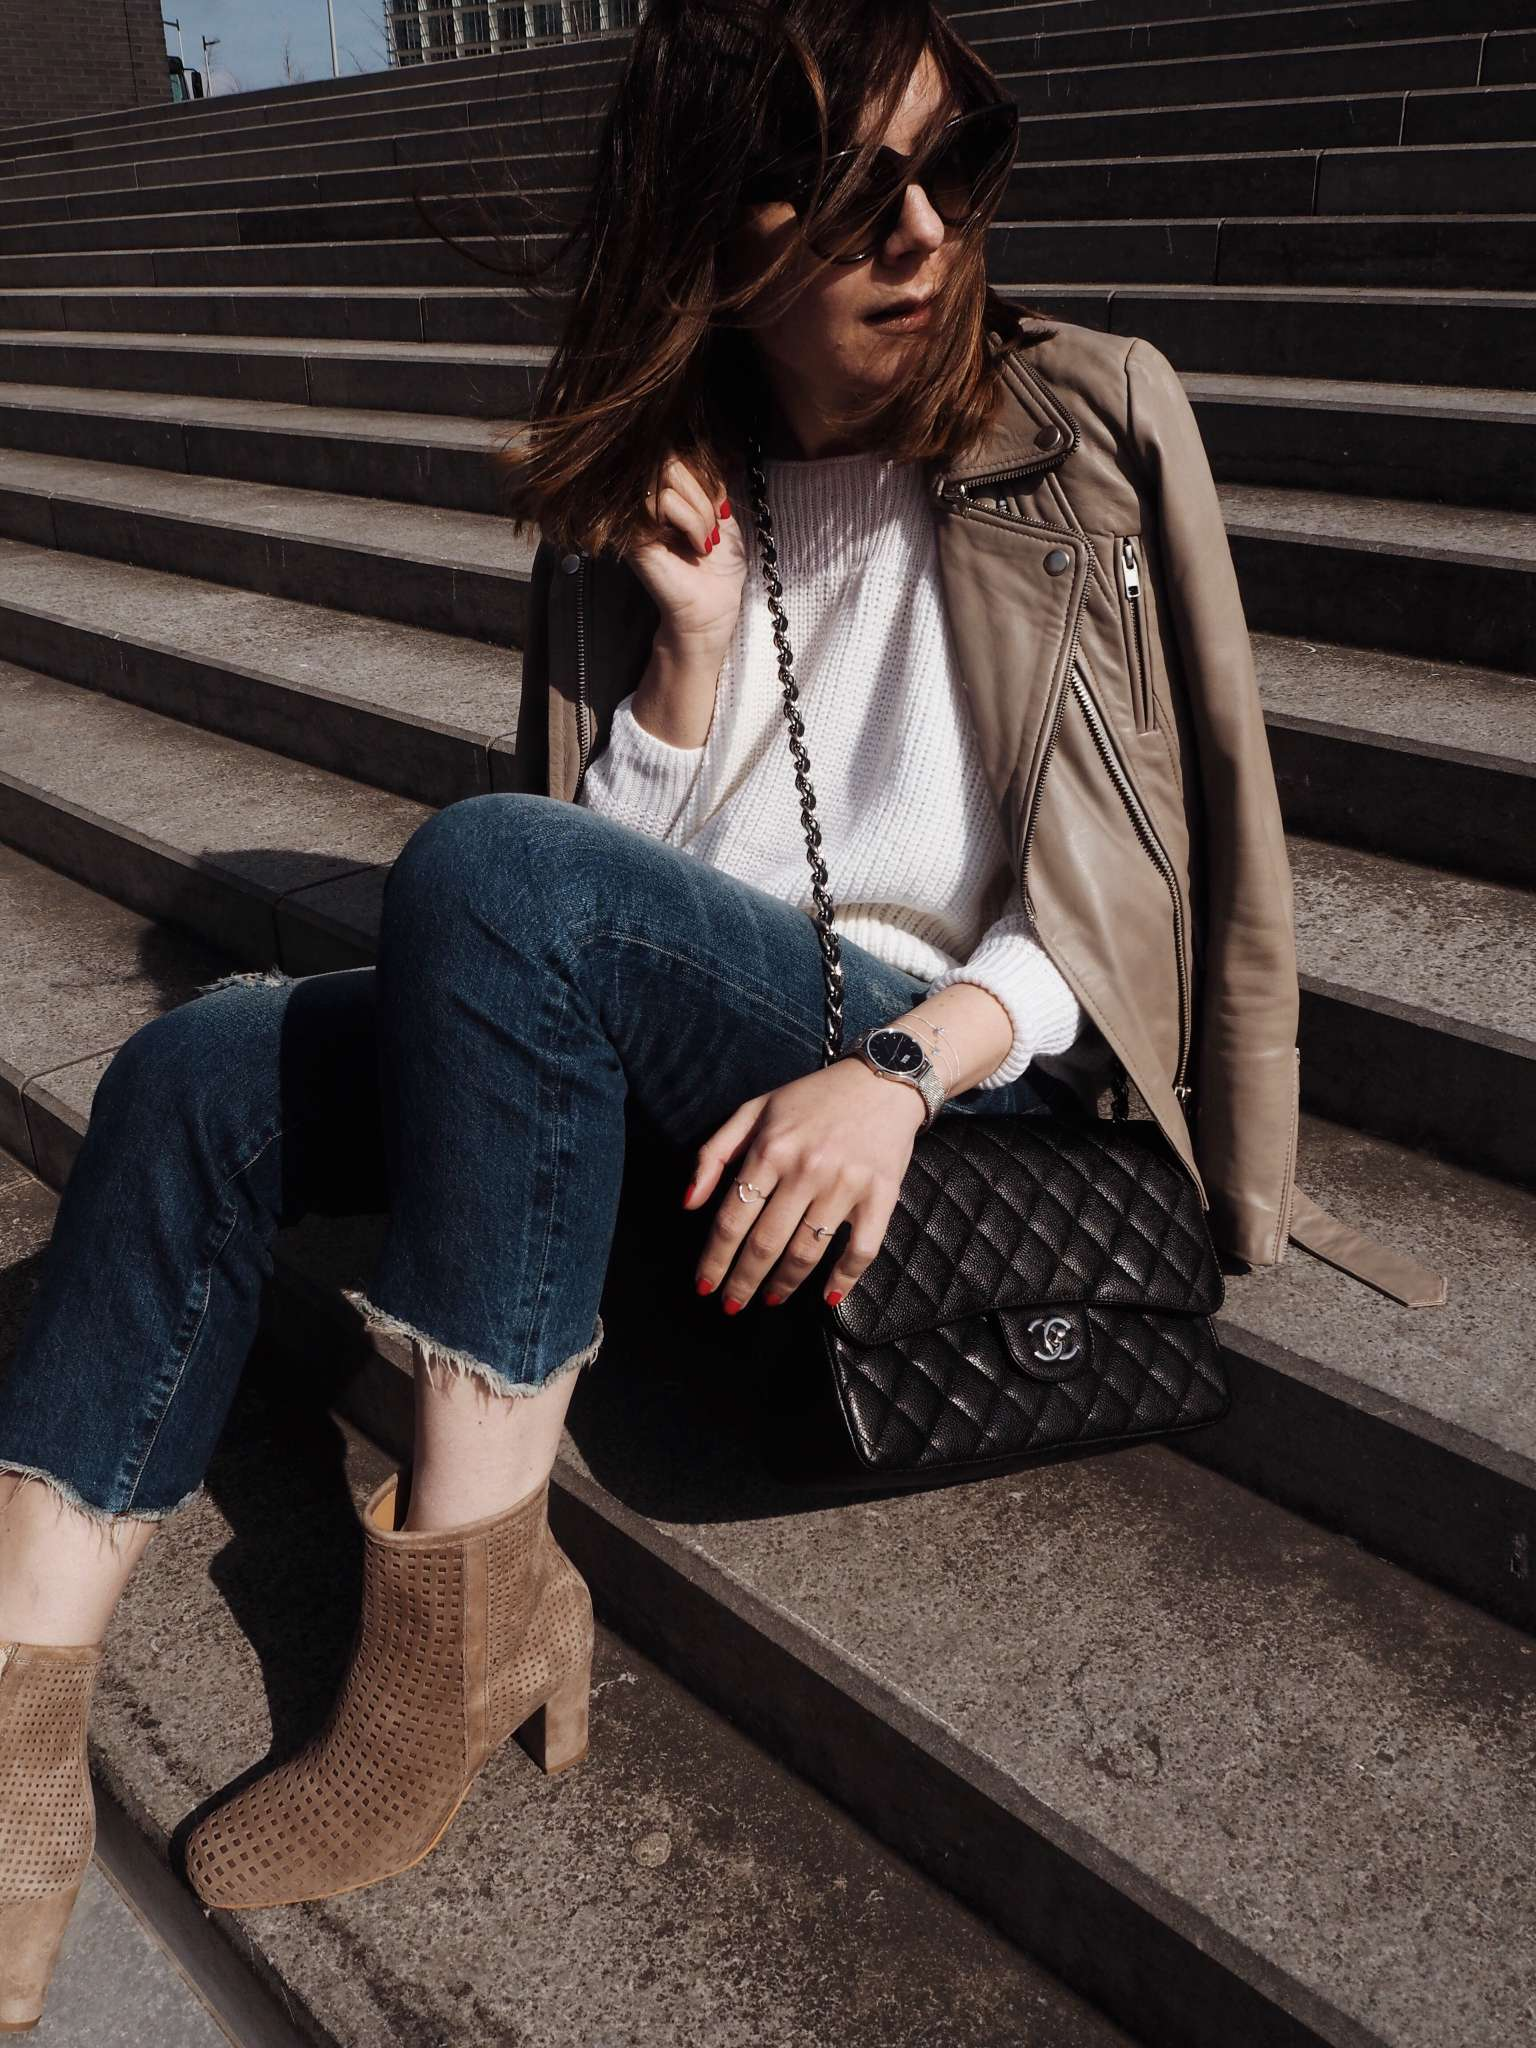 danielfootwear-lauragravestock-nicolevienna-off-the-shoulder-knit-perforated-ankle-boots-shein-silver-jewellery-silver-mesh-watch